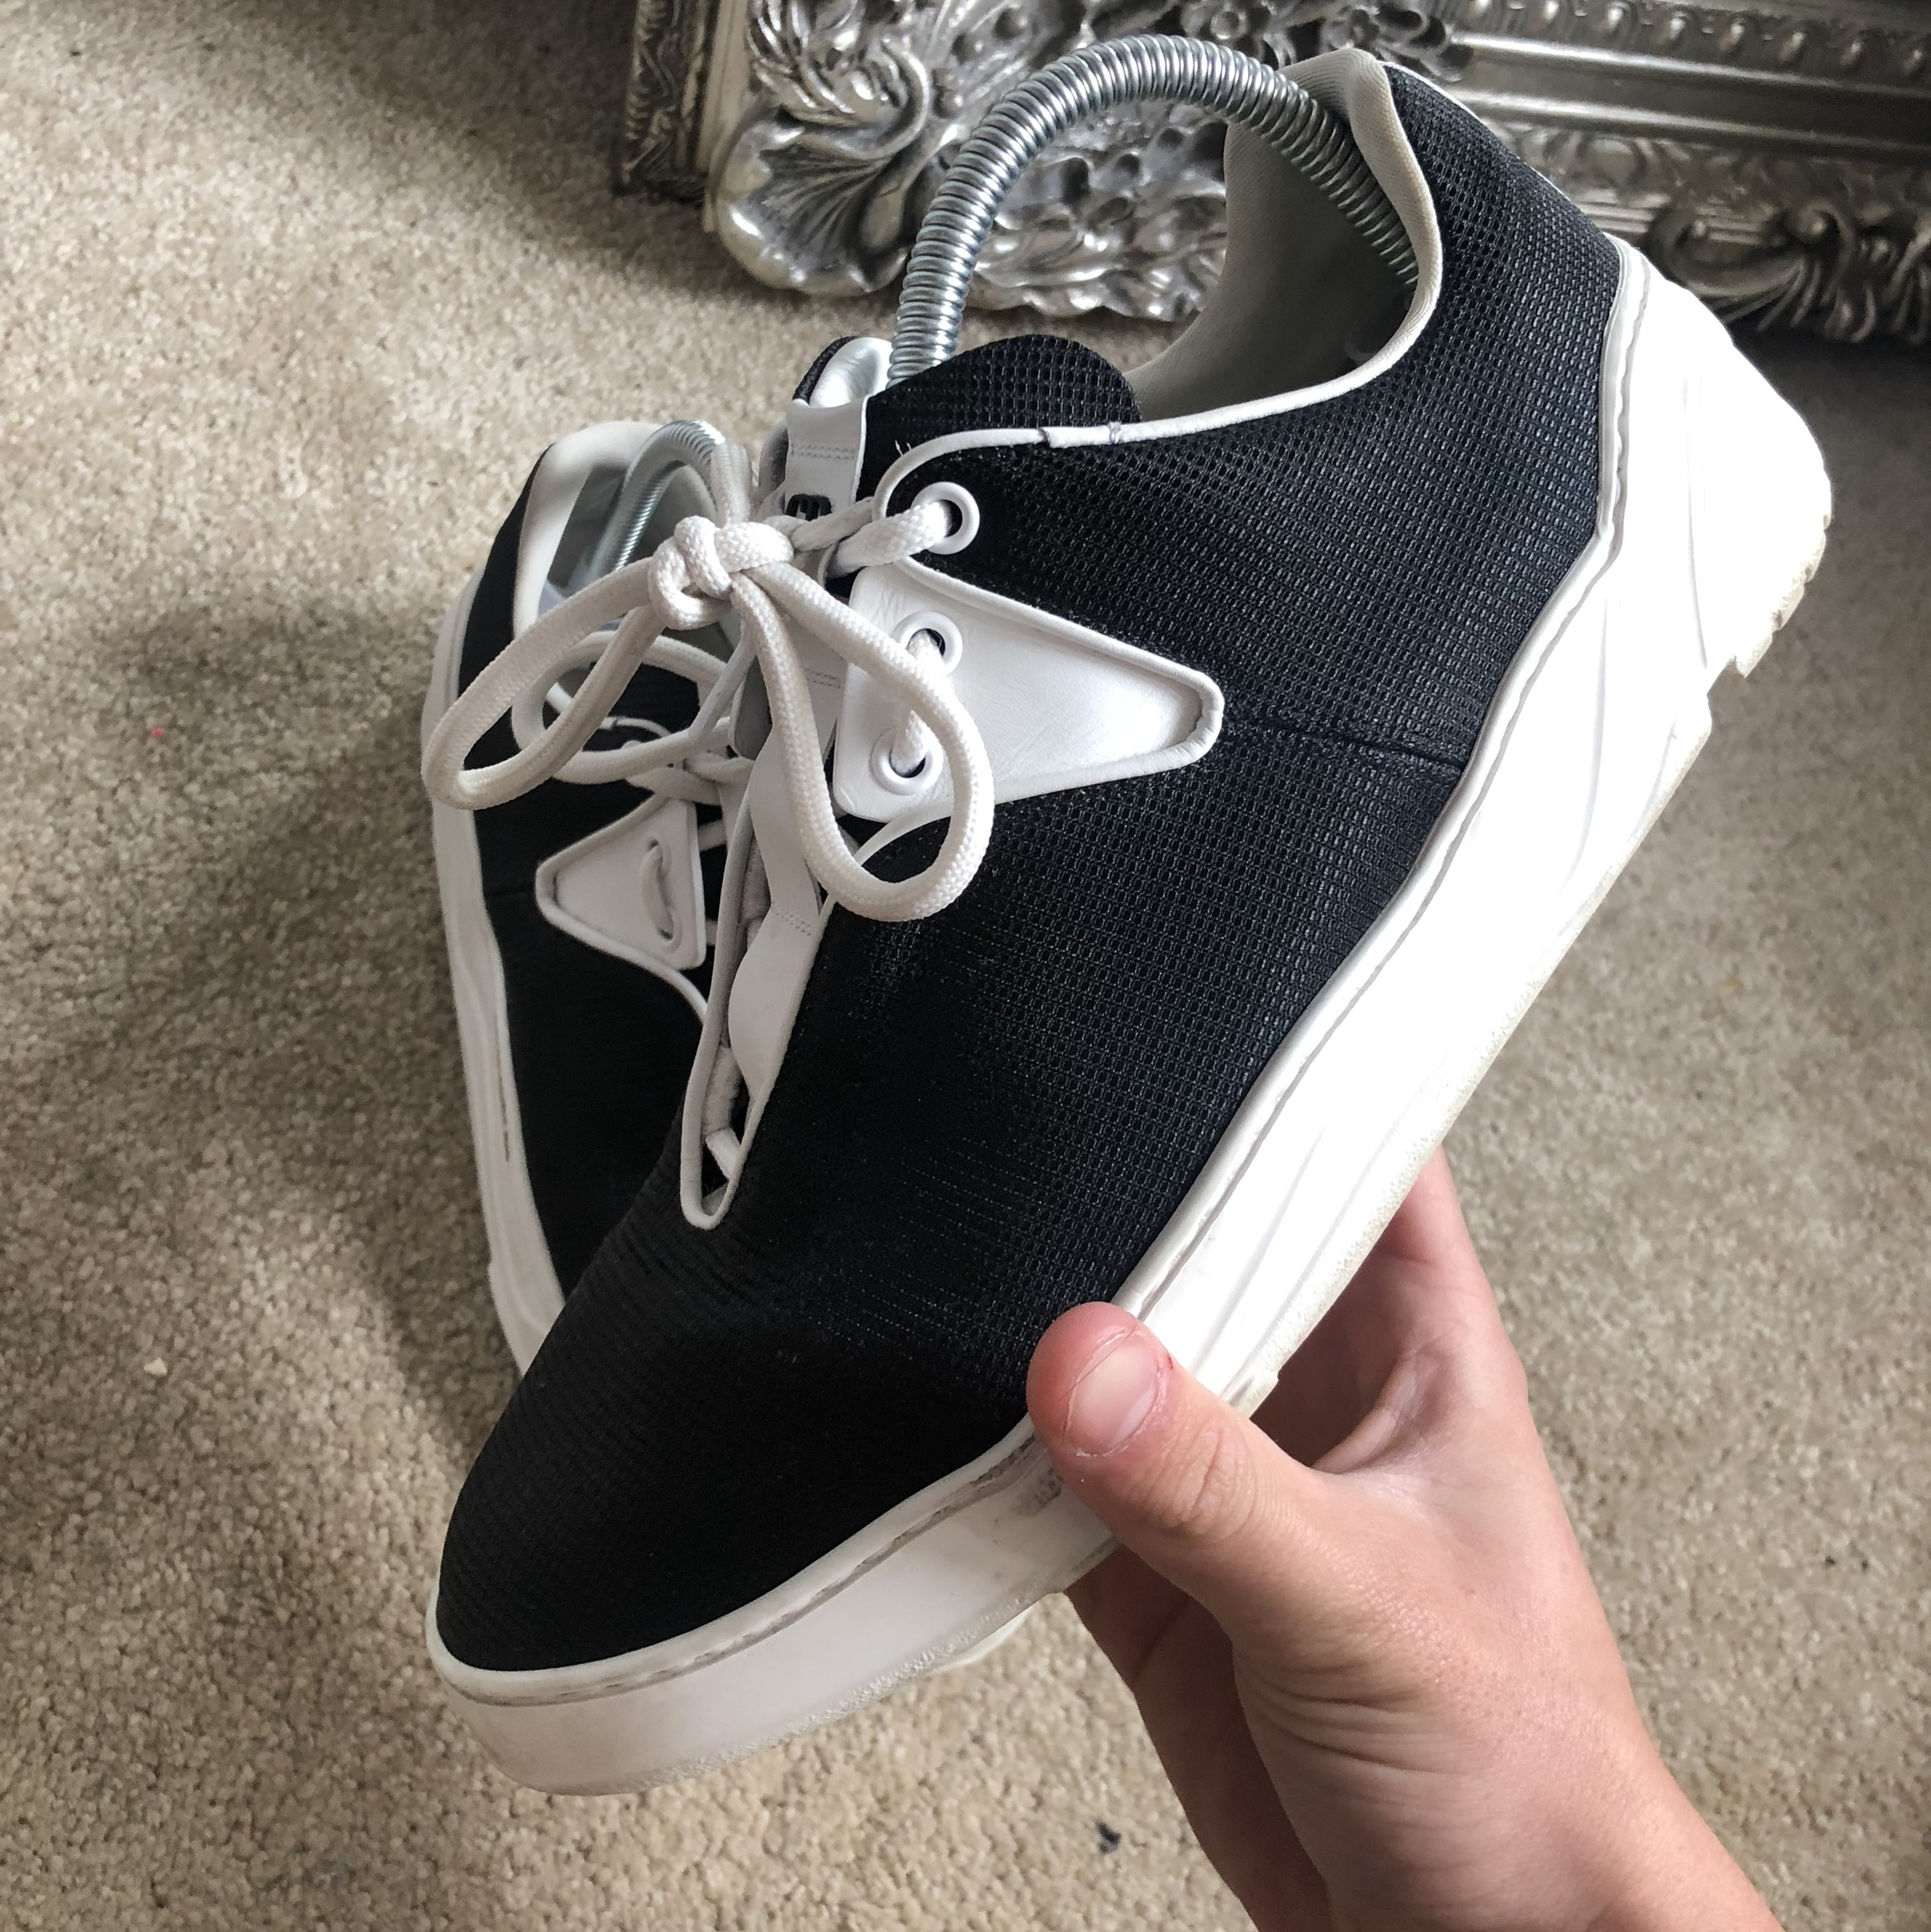 dior homme trainers size uk 7 sold